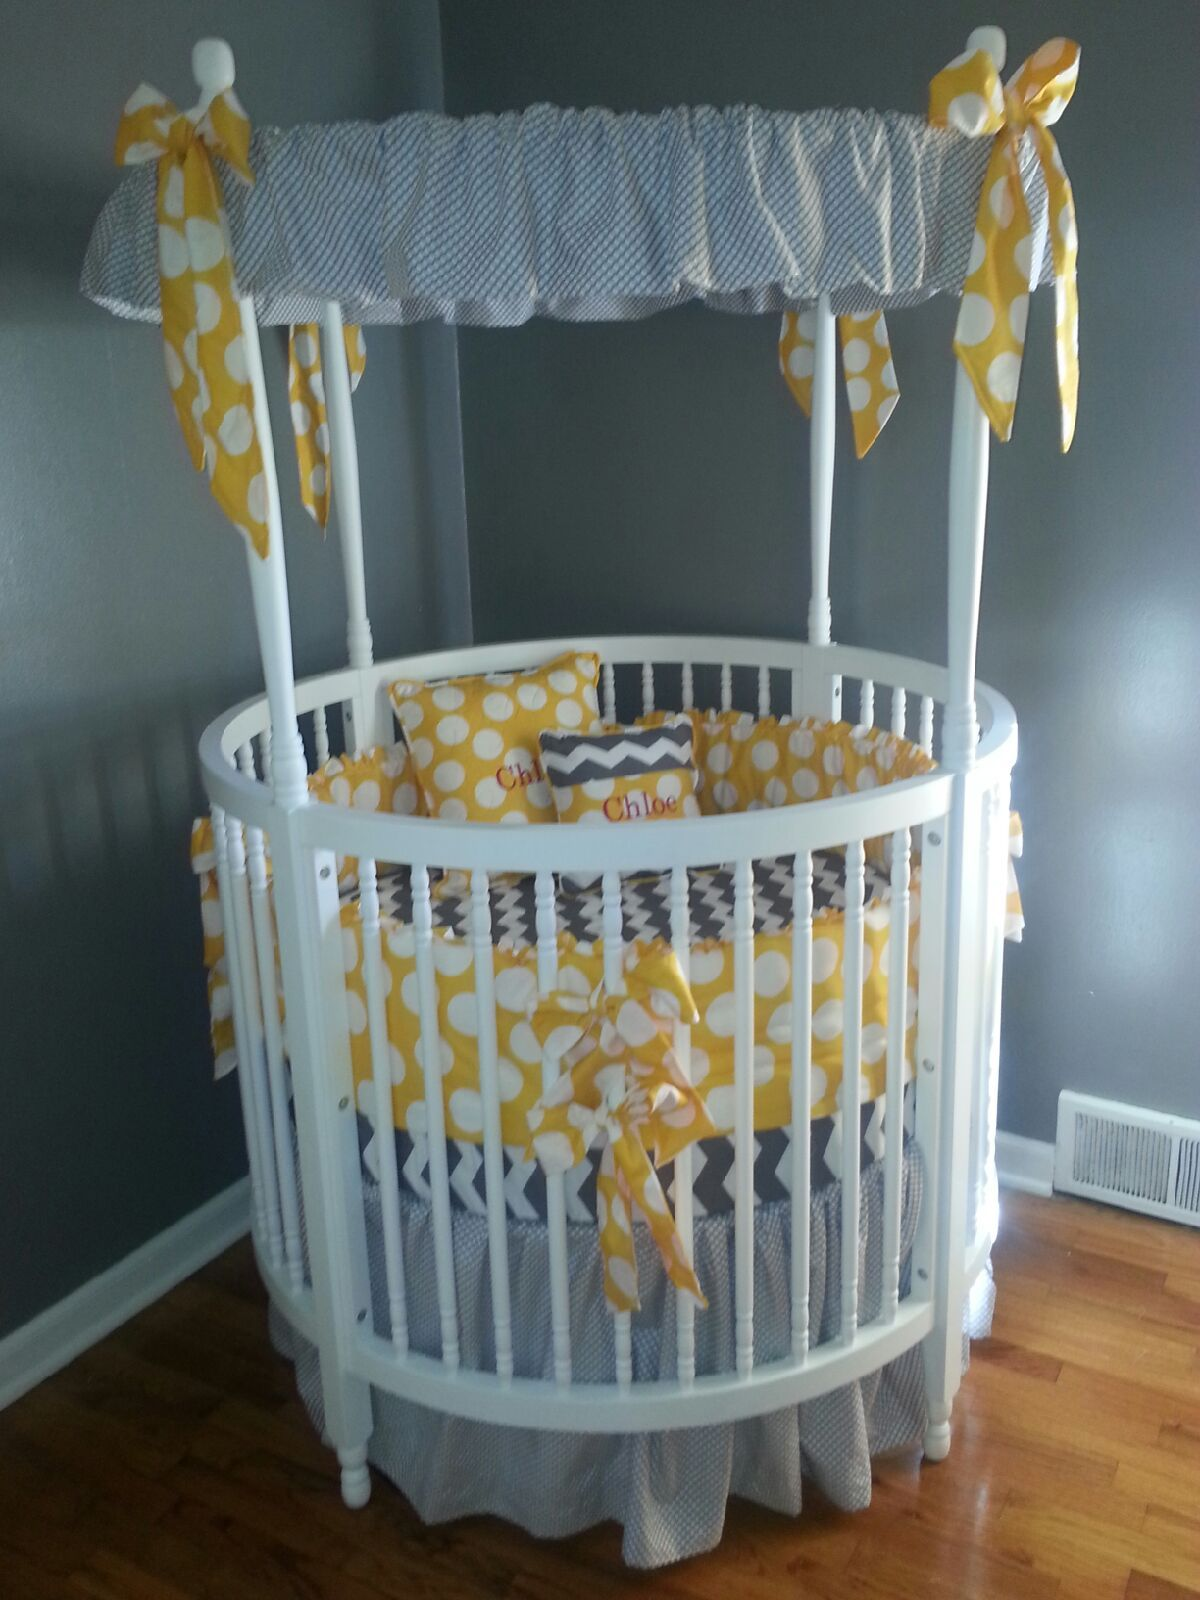 Design Round Baby Beds modern white round baby crib with amazing gray themed canopy accessories also circle pattern yellow